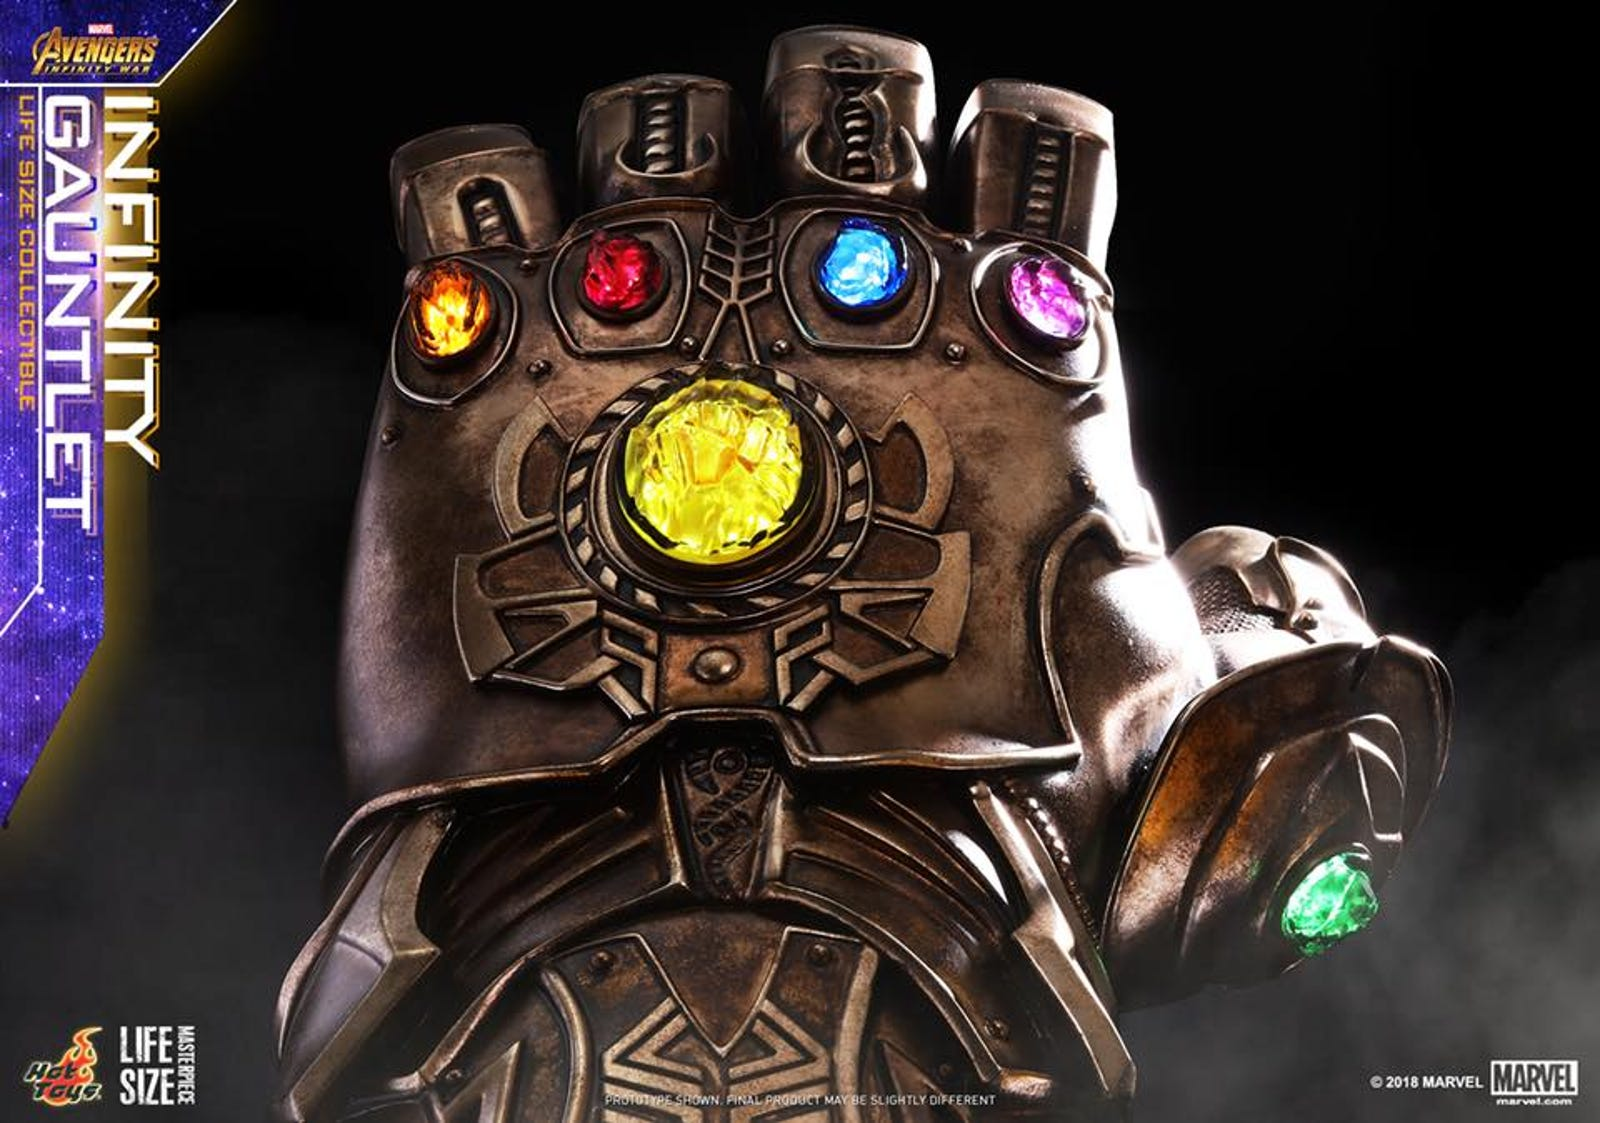 Thanos' Infinity Gauntlet from Avengers: Infinity War. Photo: Hot Toys